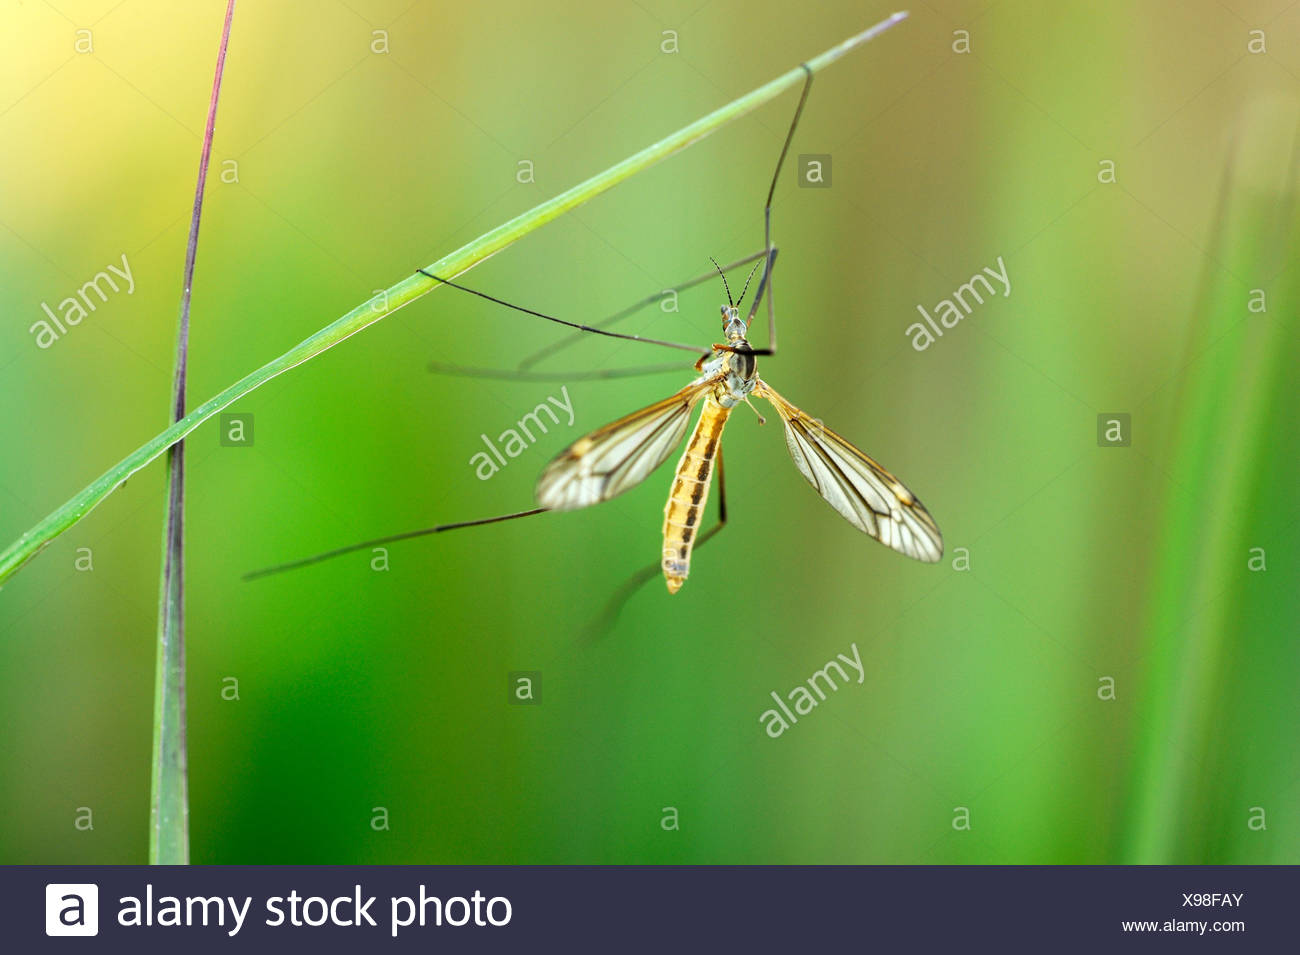 Cranefly (Tipula oleracea) hanging on a blade of grass - Stock Image